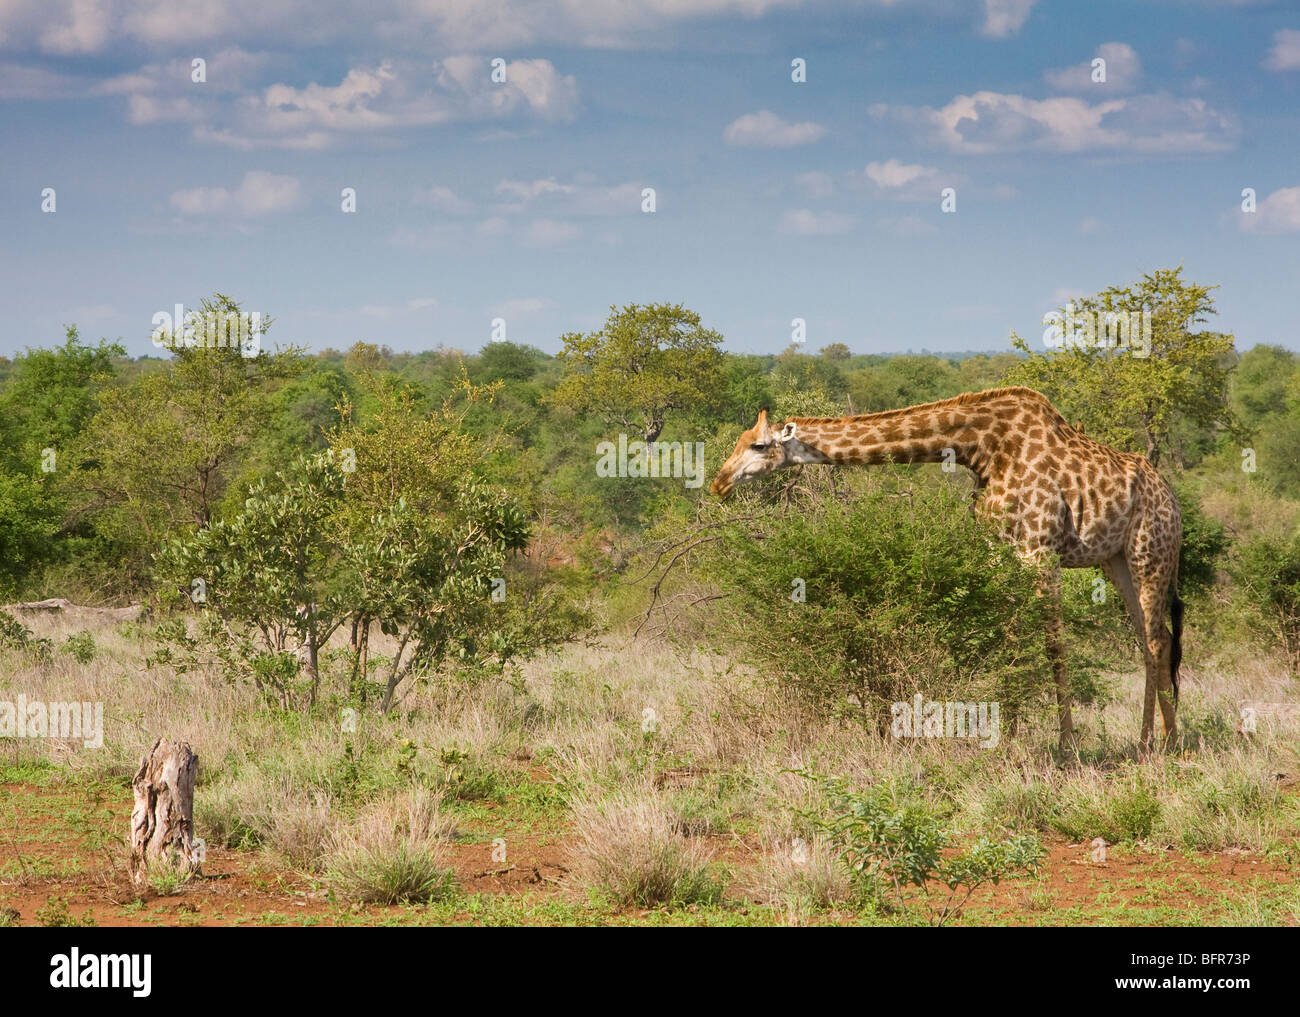 Lone Giraffe browsing on shrubs - Stock Image